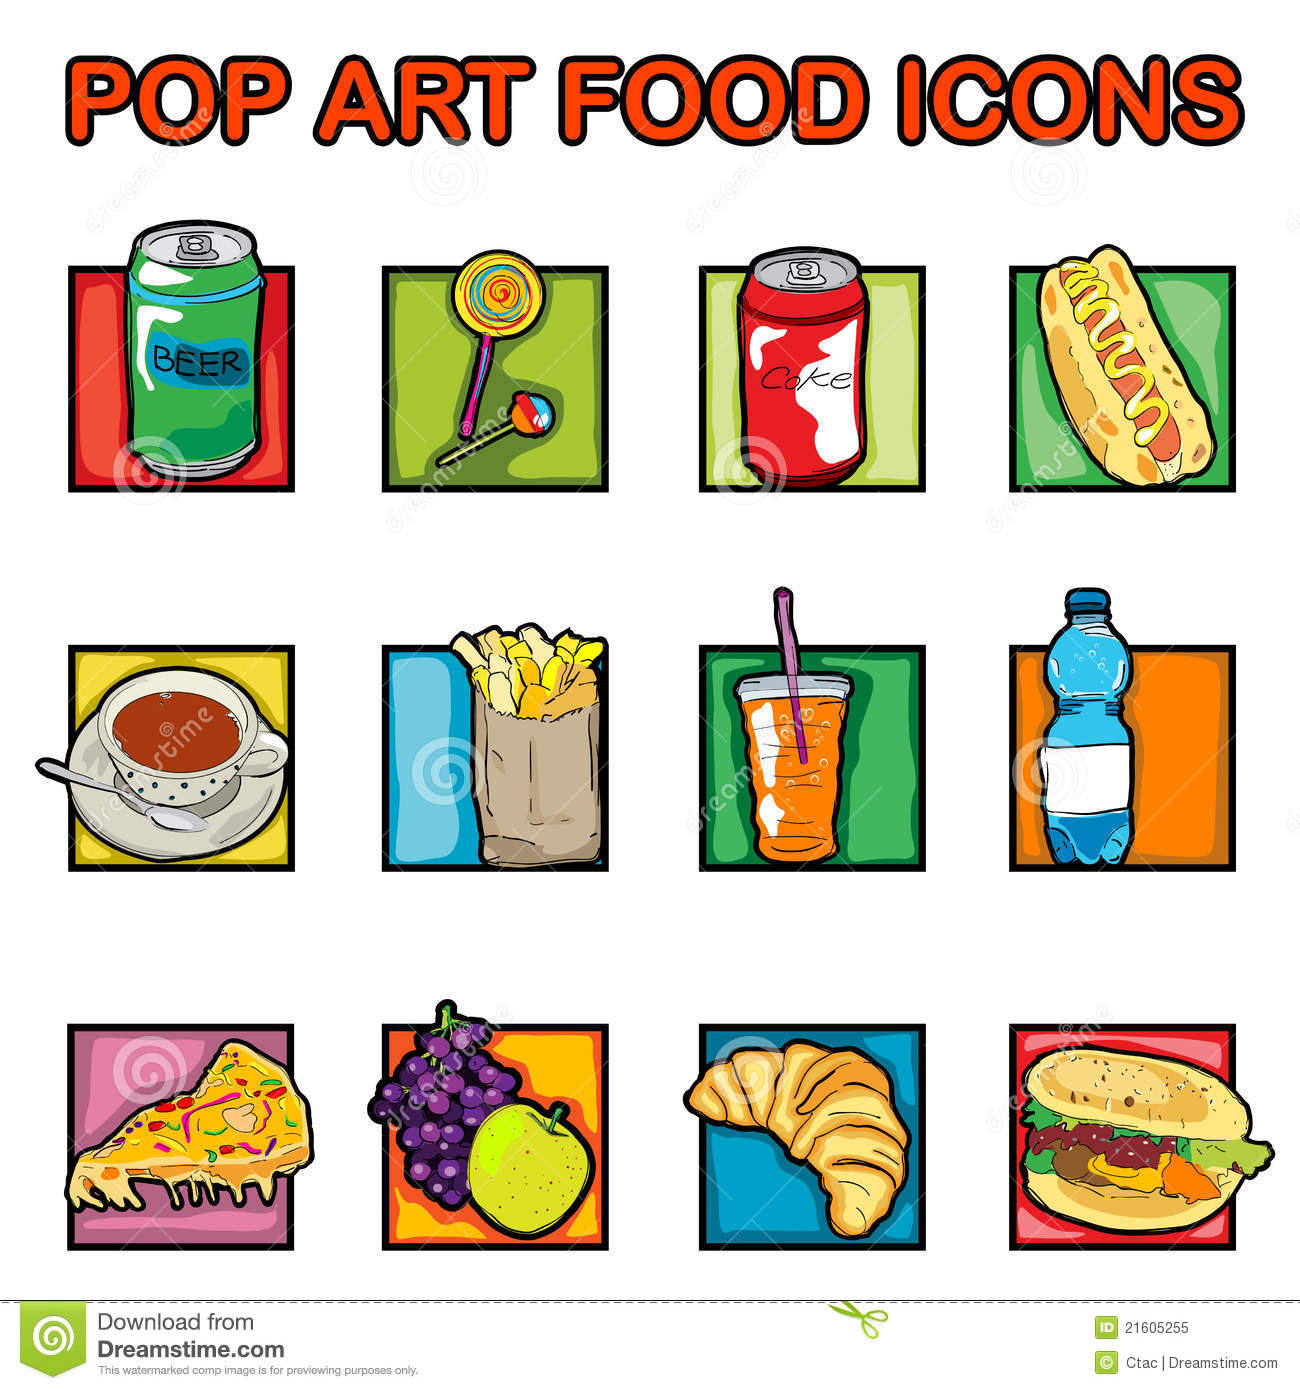 102312 Free Fruit Doodles Vectors in addition Royalty Free Stock Photo Pop Art Food Icons Image21605255 additionally How To Turn Off Find My Iphone furthermore 2 furthermore Apple Vector. on pixel apple juice